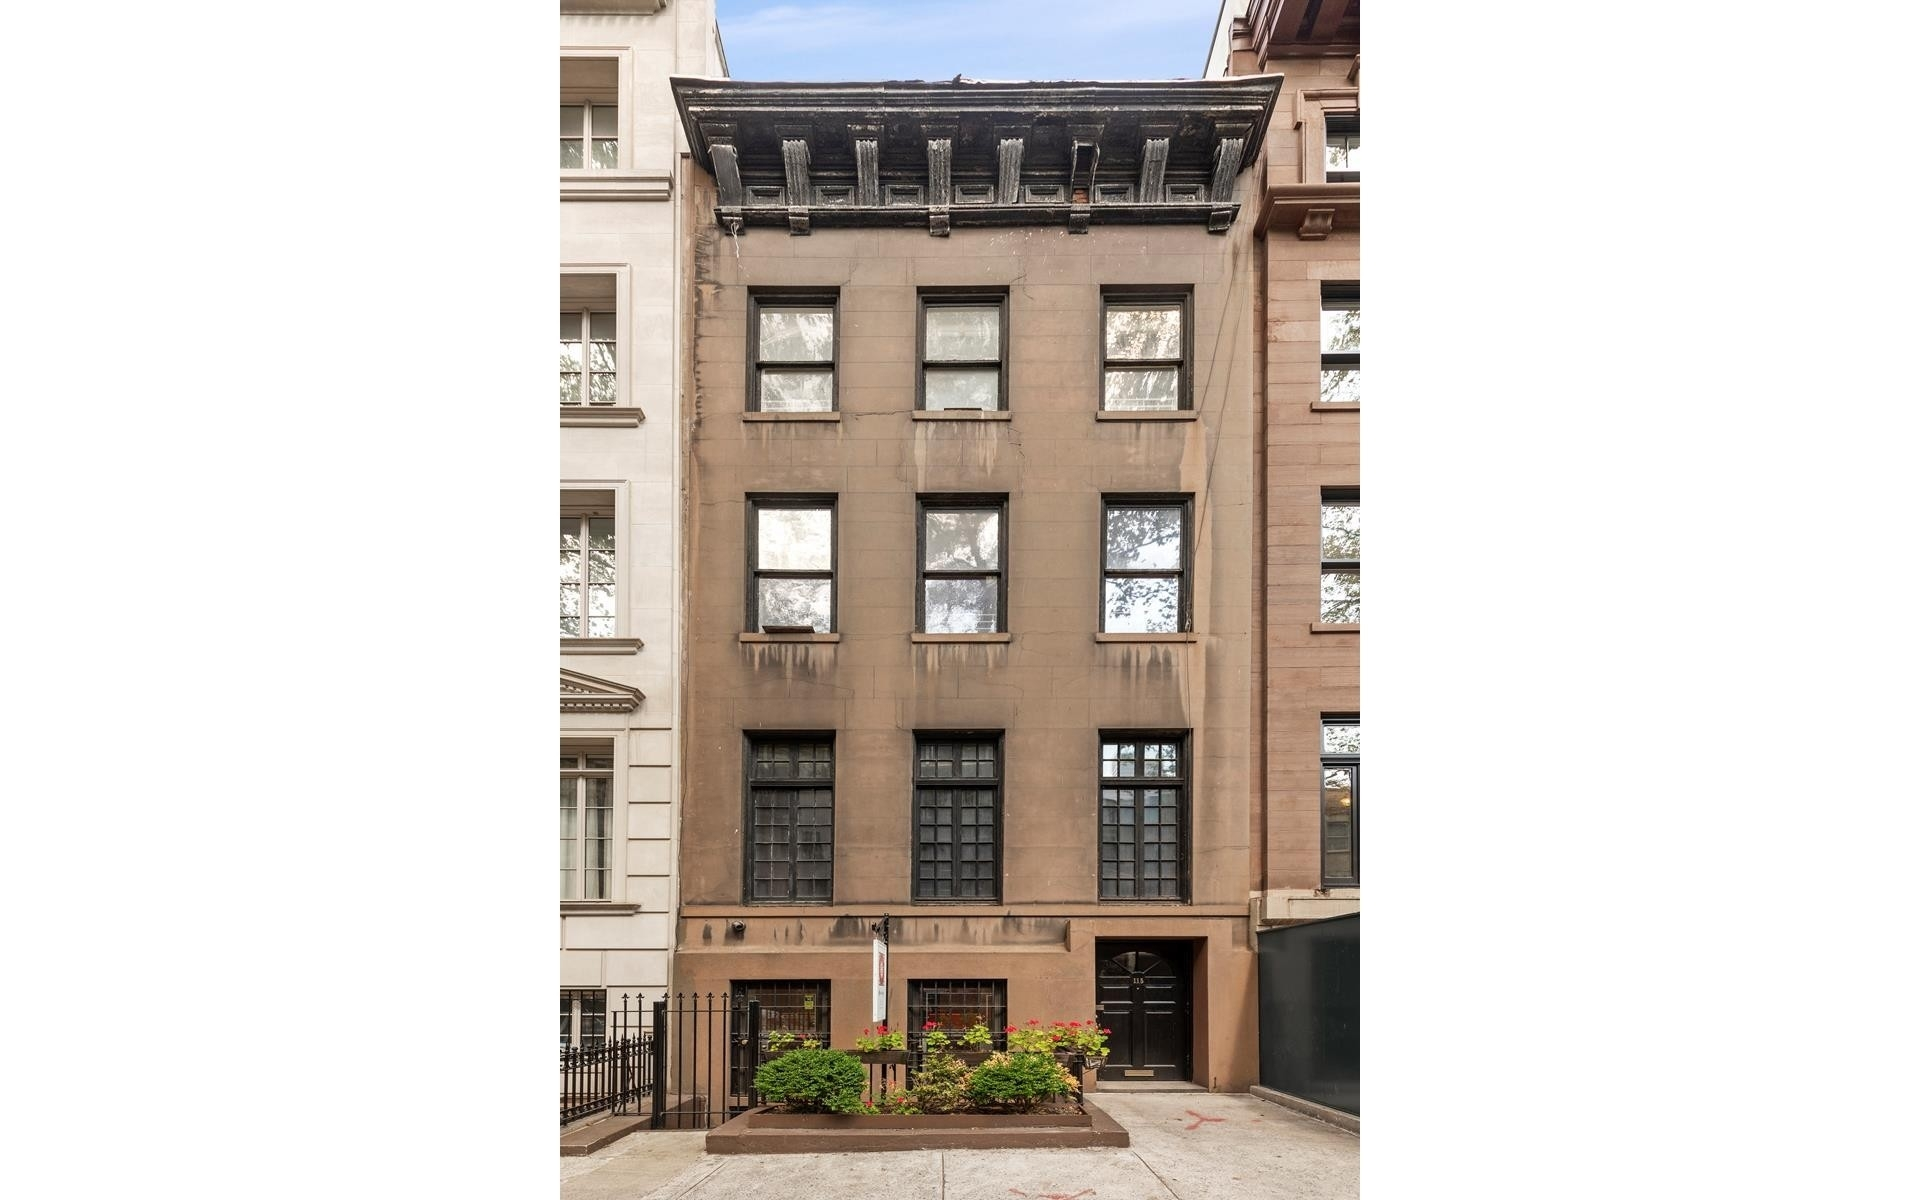 Property at Lenox Hill, New York, NY 10021